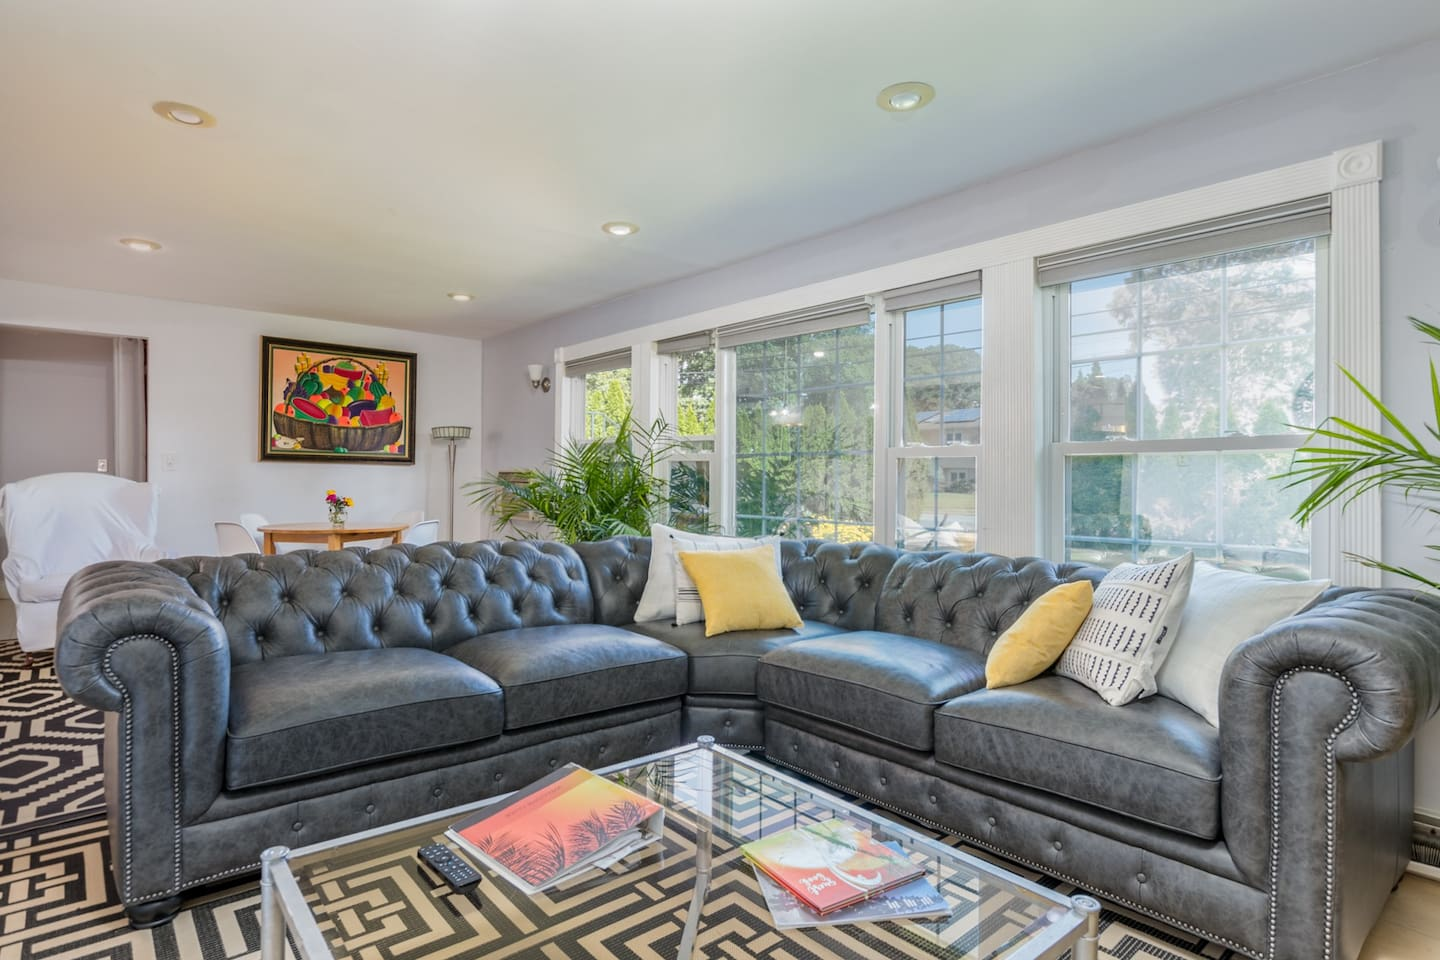 Large, airy, comy living room with lots of natural light.    Huge sofa seats all your friends while watching a great Netflix movie or playing one of the many board games available,